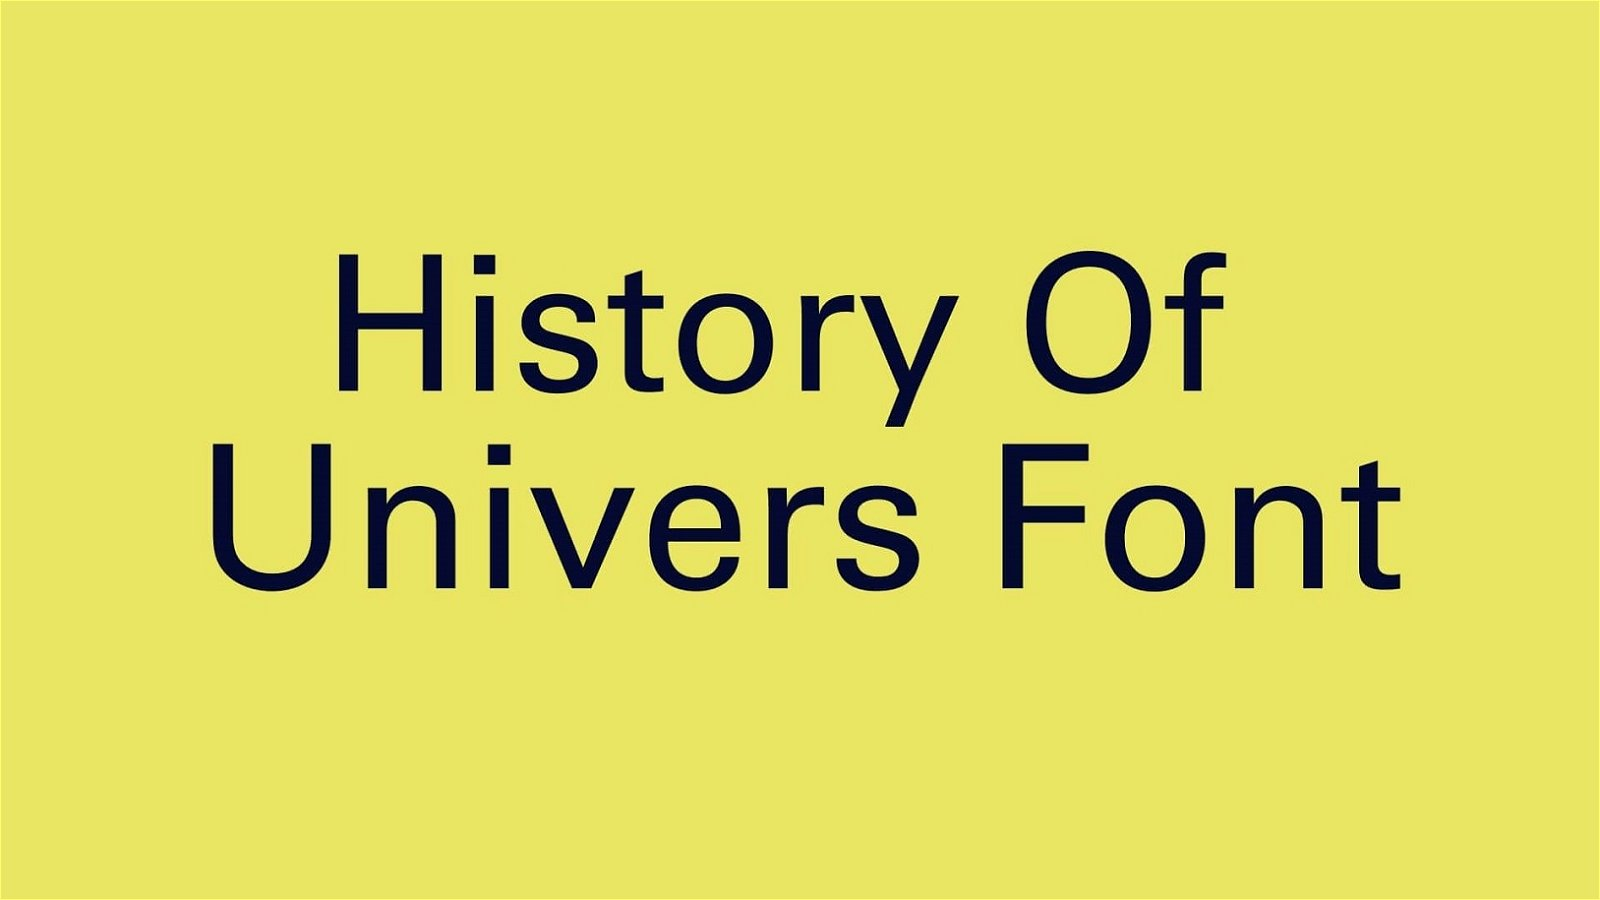 History of Univers Font